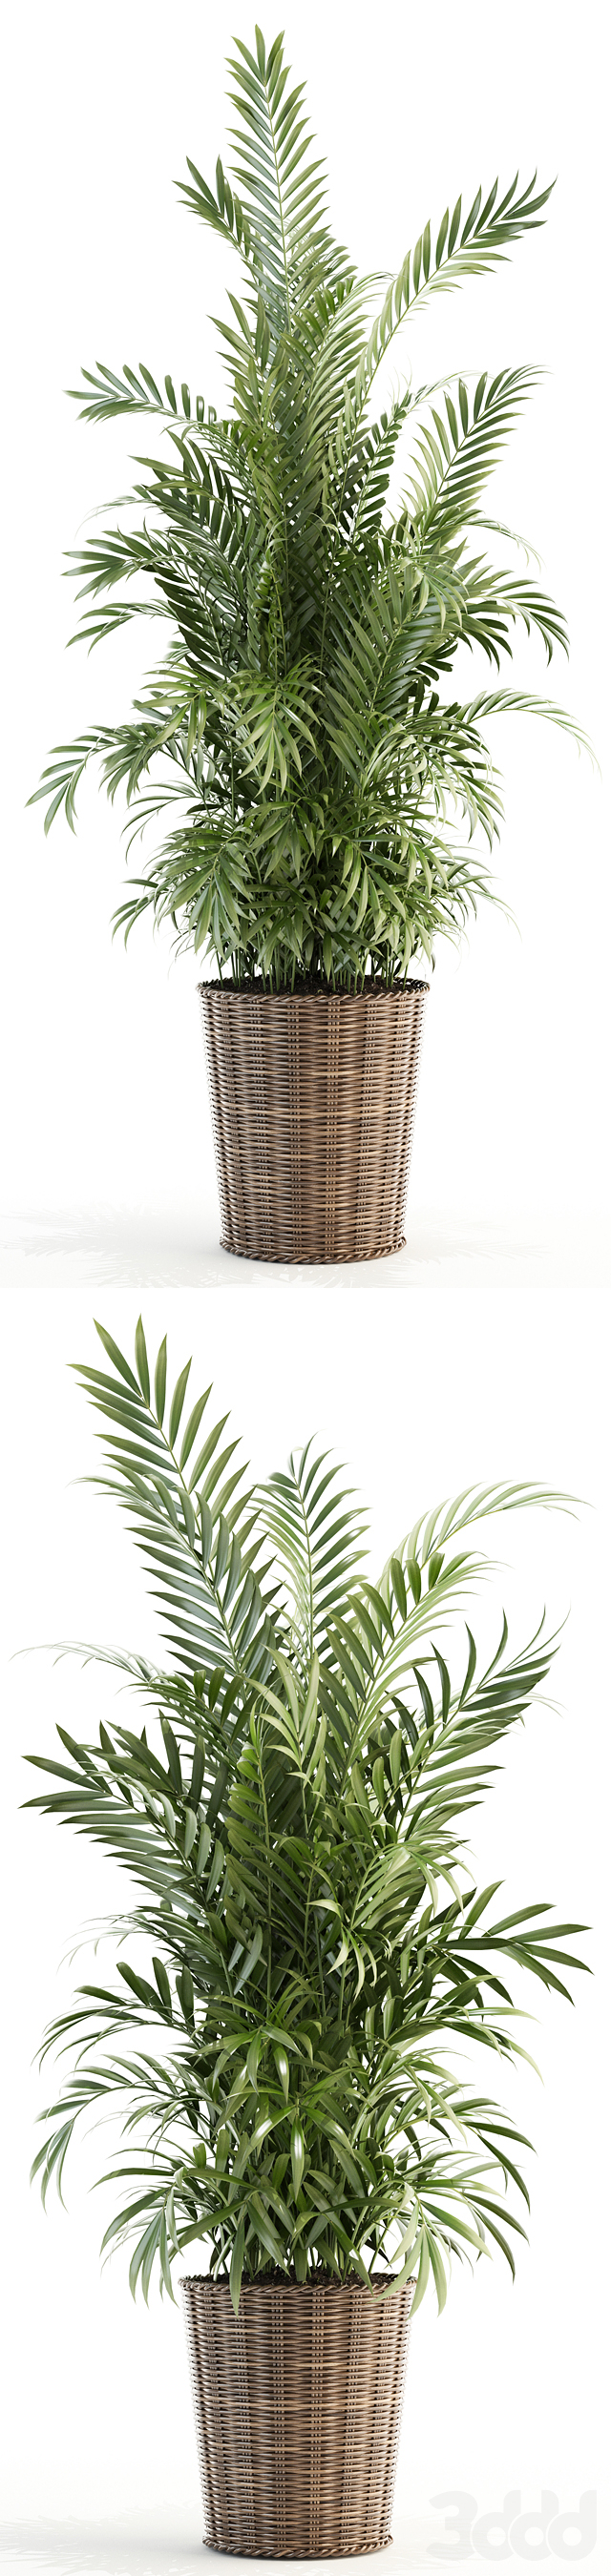 Plants collection 93